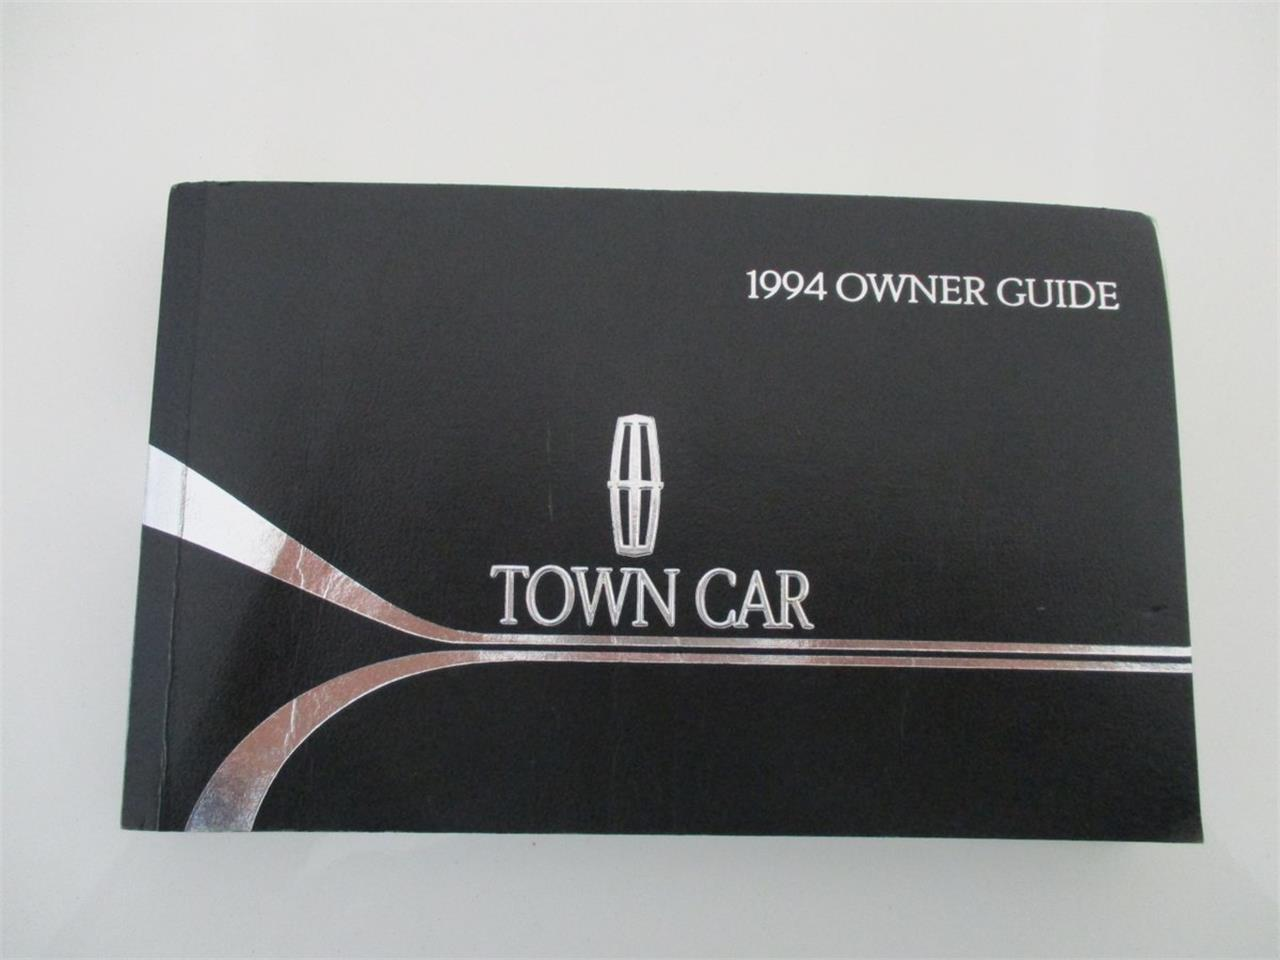 Large Picture of '94 Executive Series Town Car located in Ohio Offered by Vintage Motor Cars USA - LDPU